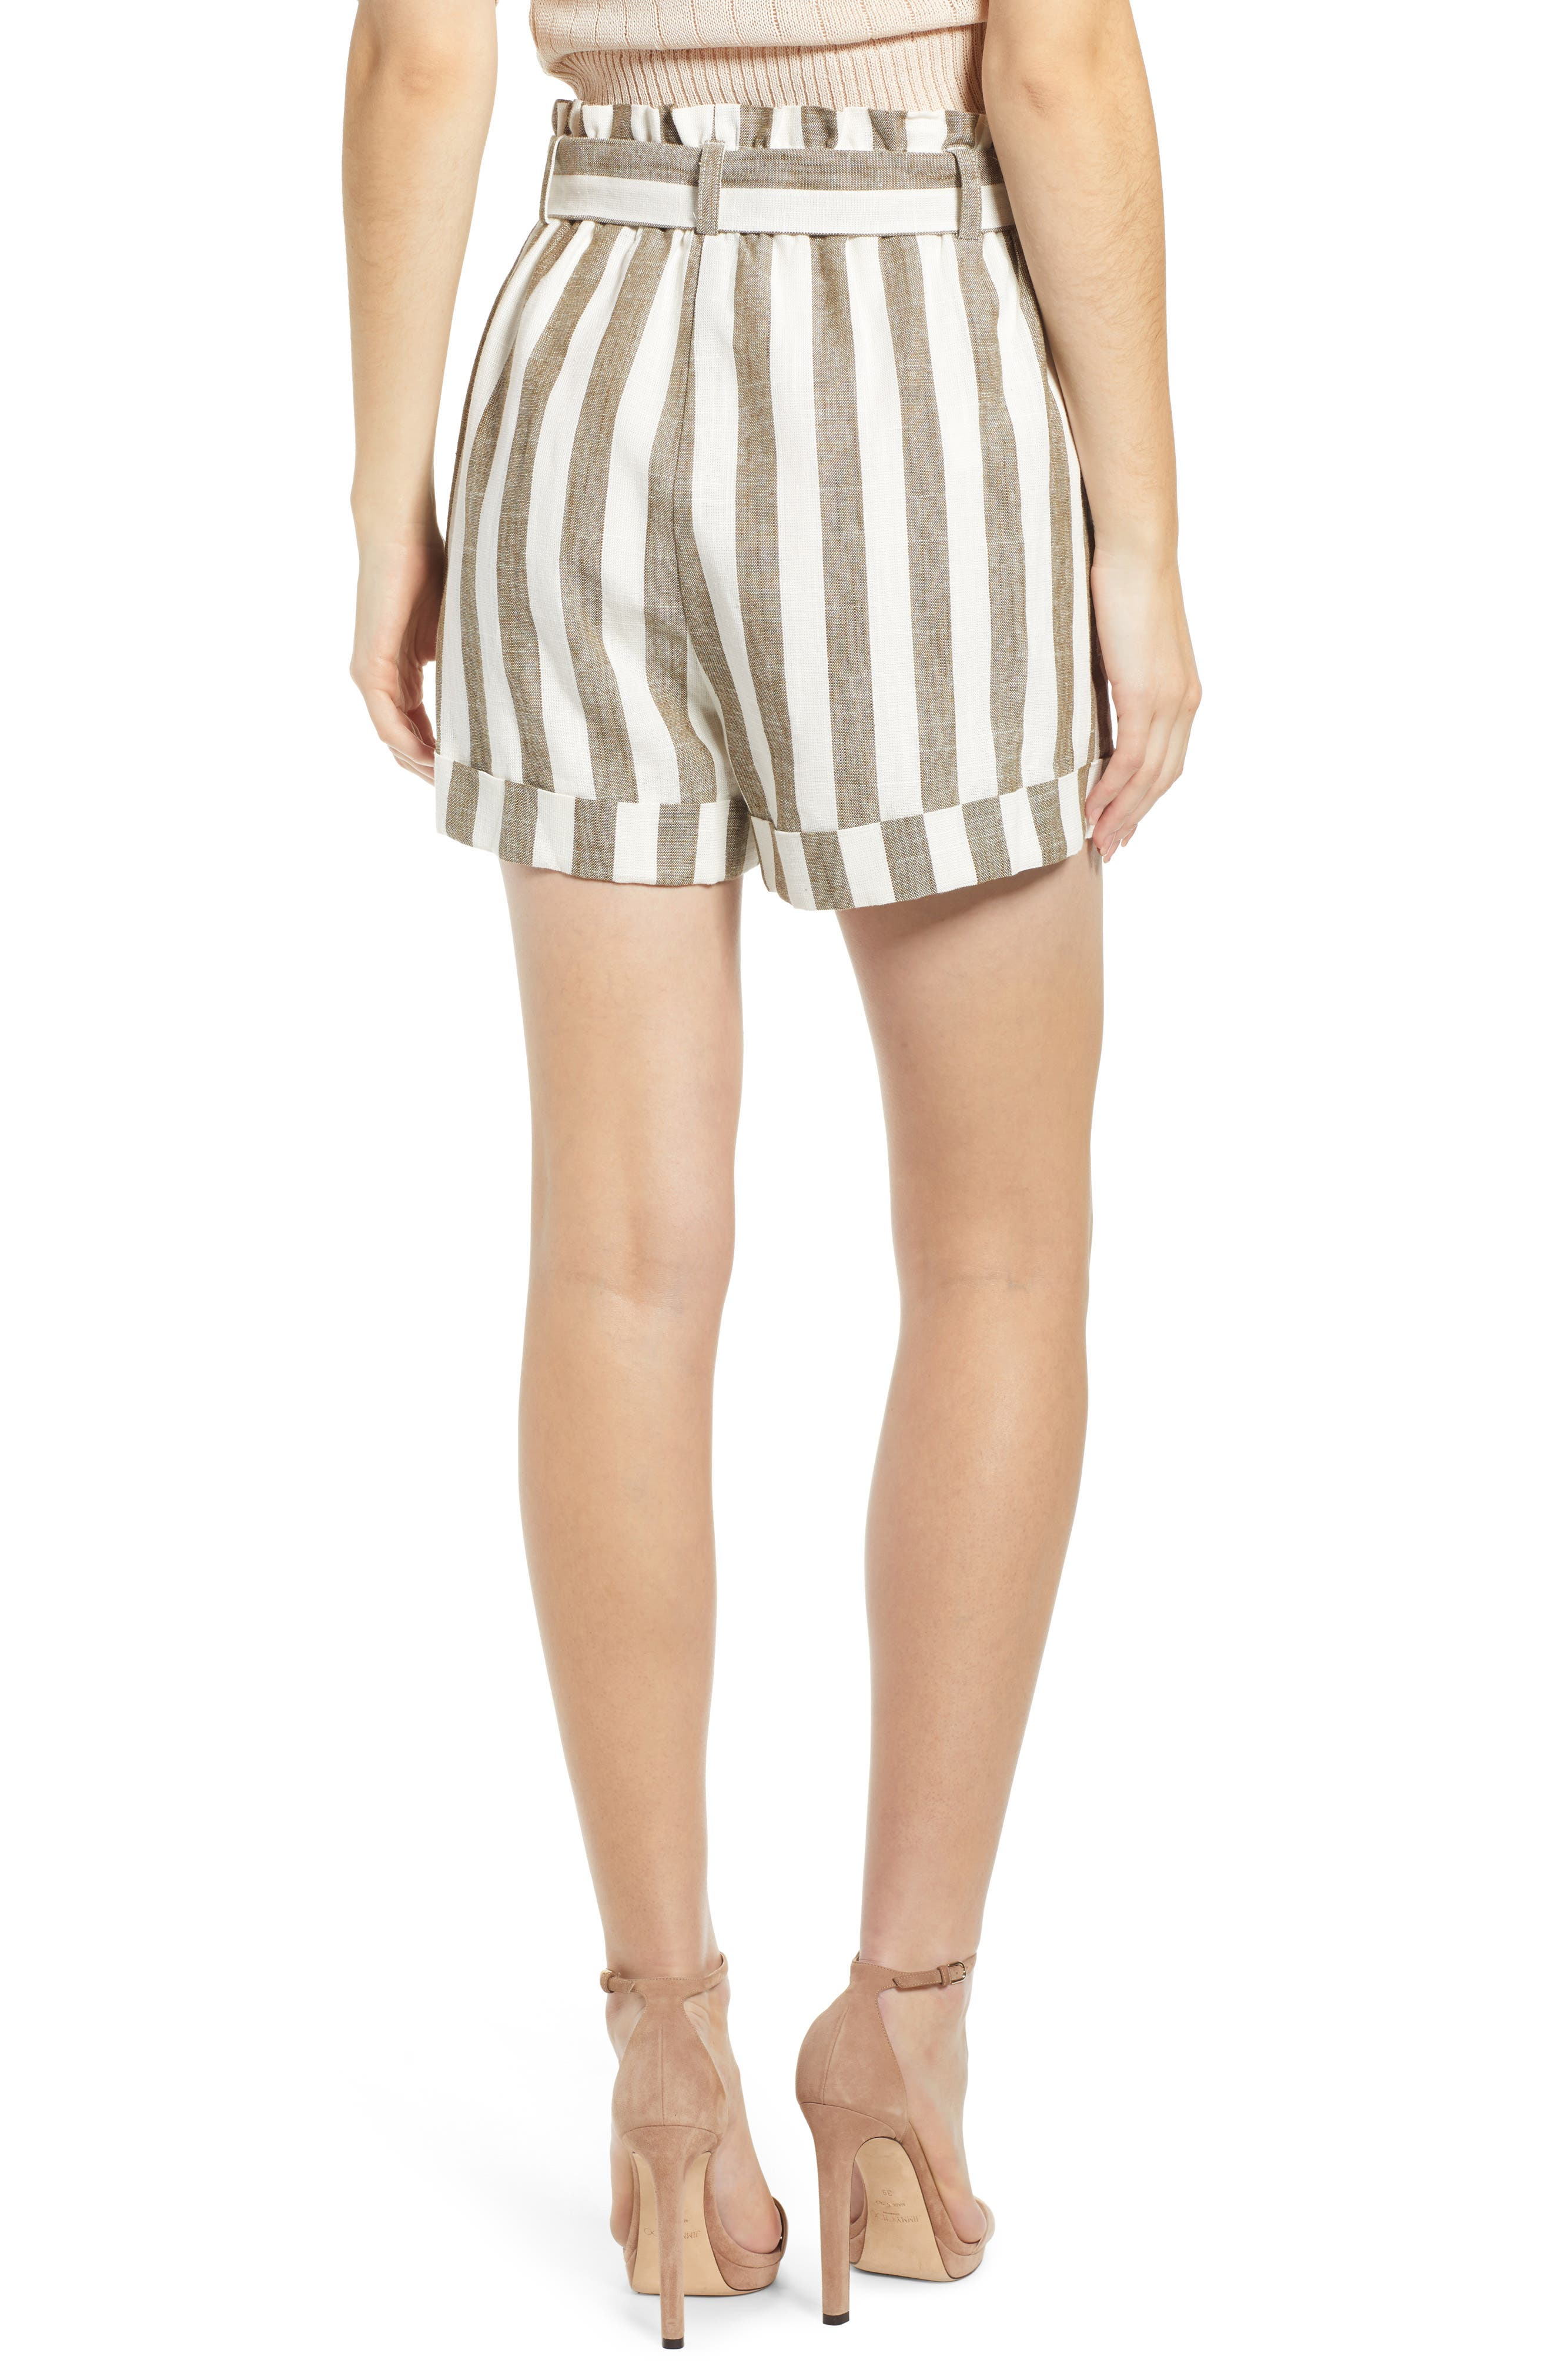 CHRISELLE LIM COLLECTION, Chriselle Lim Cherie Shorts, Alternate thumbnail 2, color, OLIVE STRIPE